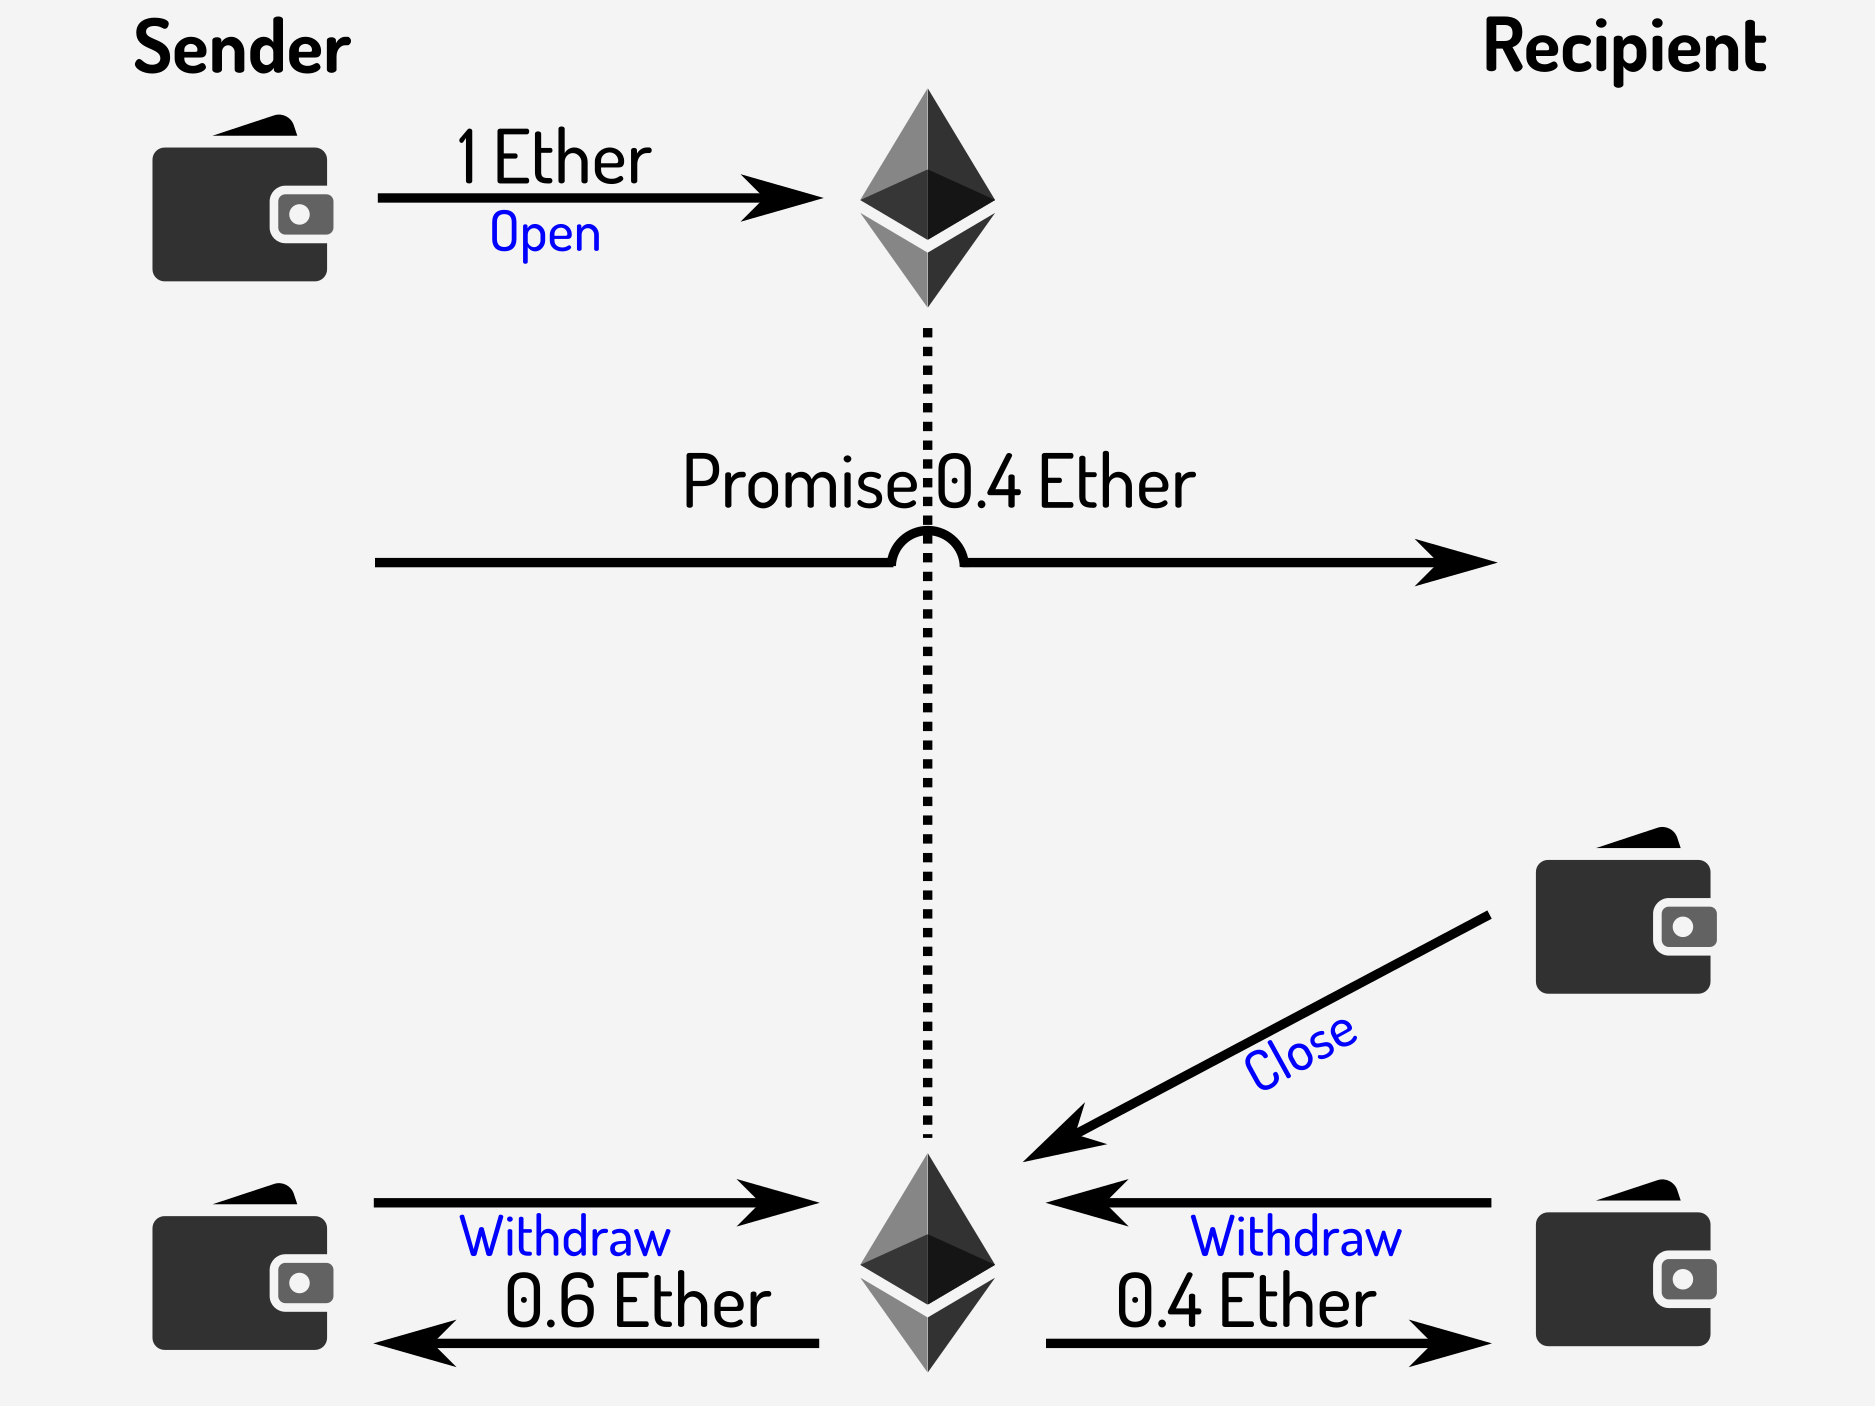 image from Building Ethereum payment channels